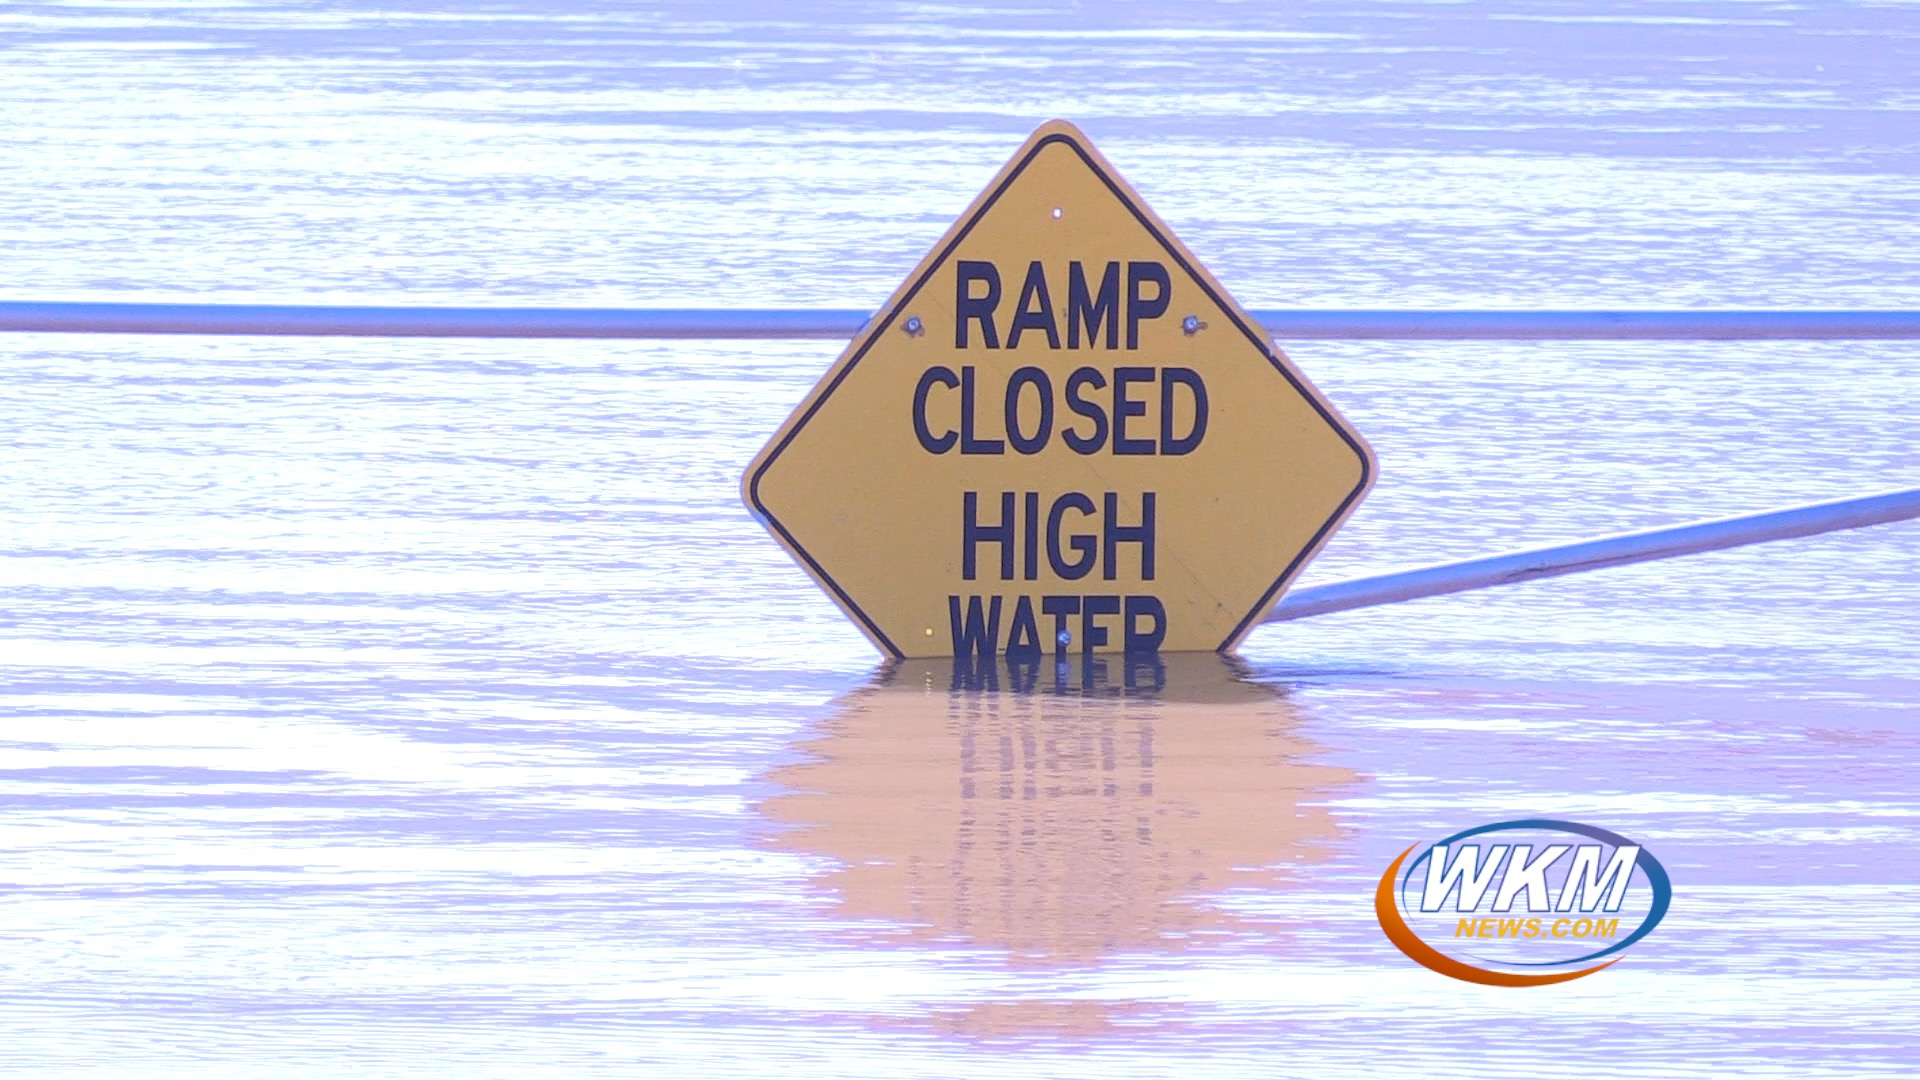 Vaughn Dr. Becomes Extension of Ohio River After Week of Flooding